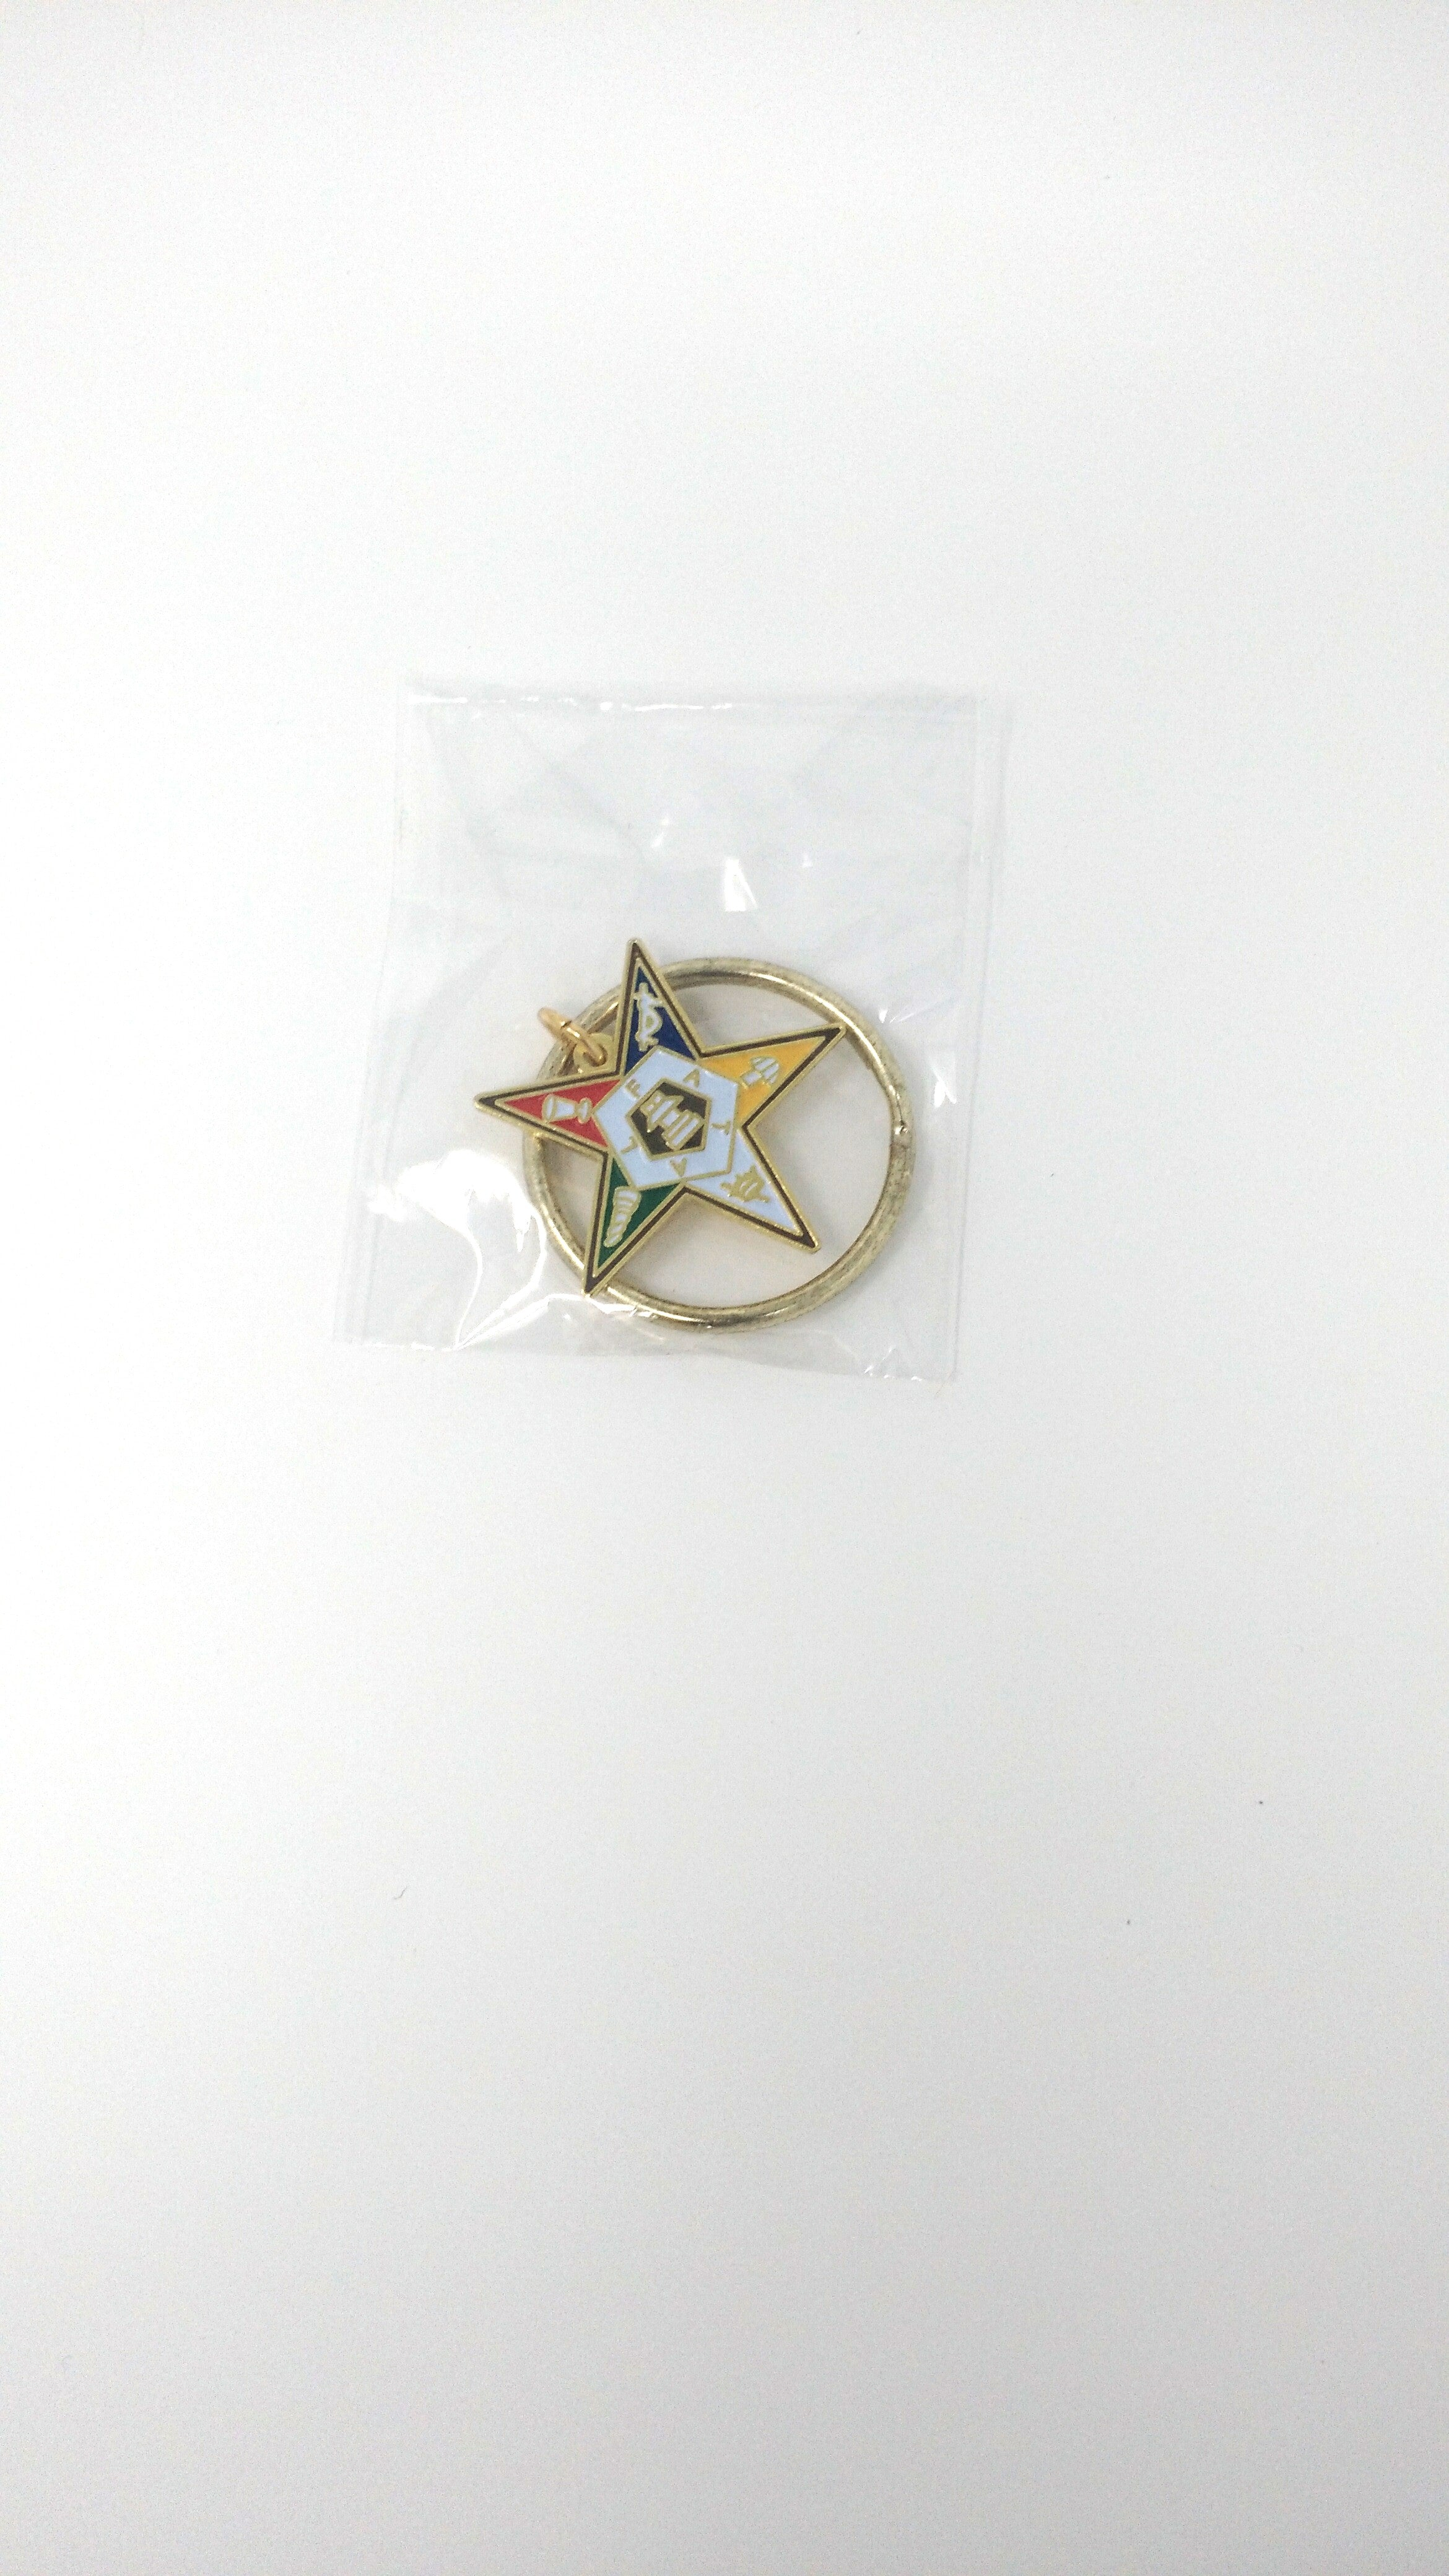 Order of Eastern Star Metal Key Chain